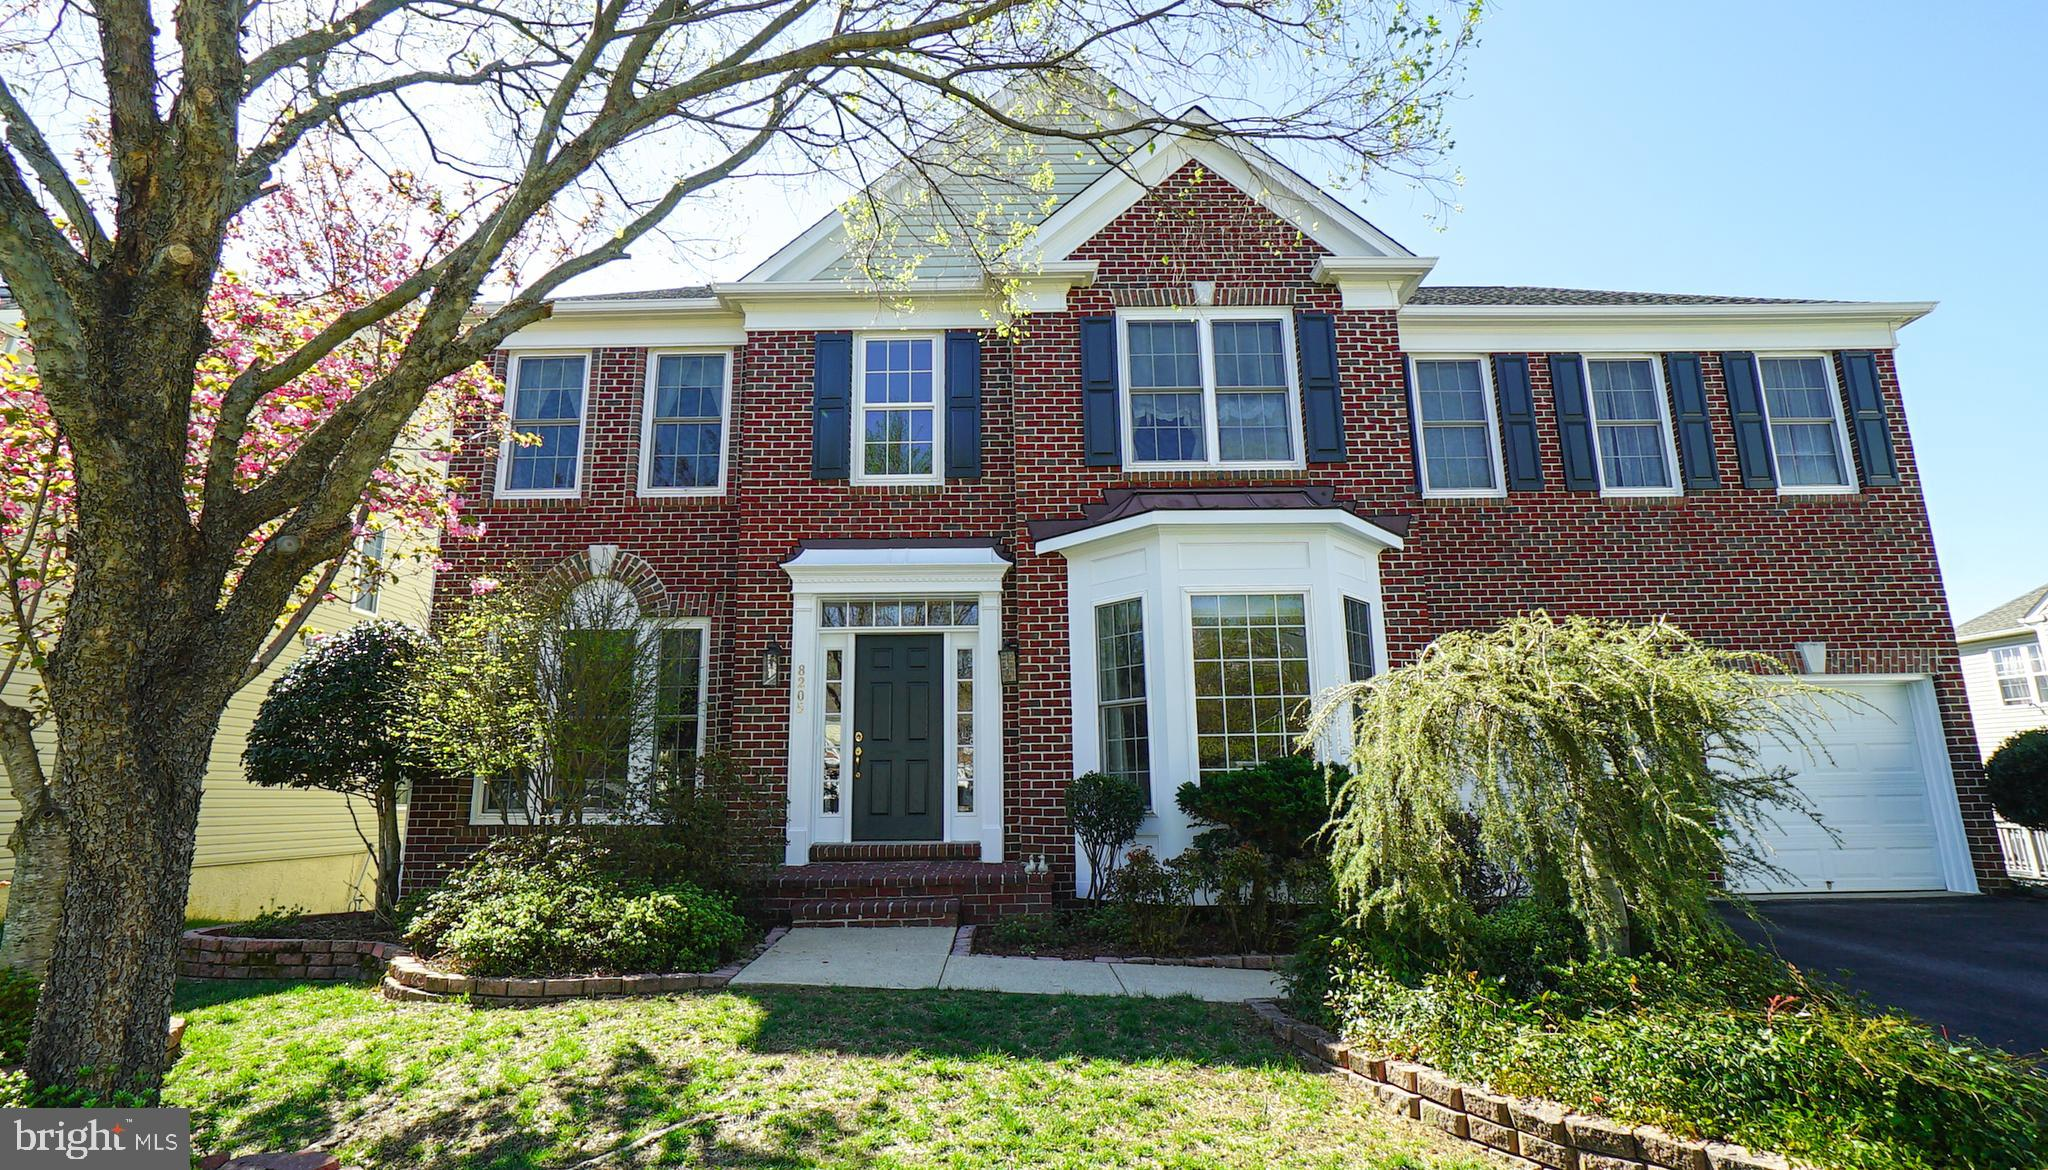 Hugh Price Reduction! Stunning Monterey Model in desired Cul-de-Sac. Formal Living room & Dining room, Library, Gourmet kitchen opens to Sunroom & huge Family room with fireplace. Large Master Bedroom with sitting area, luxury bath & huge walk-in closet.